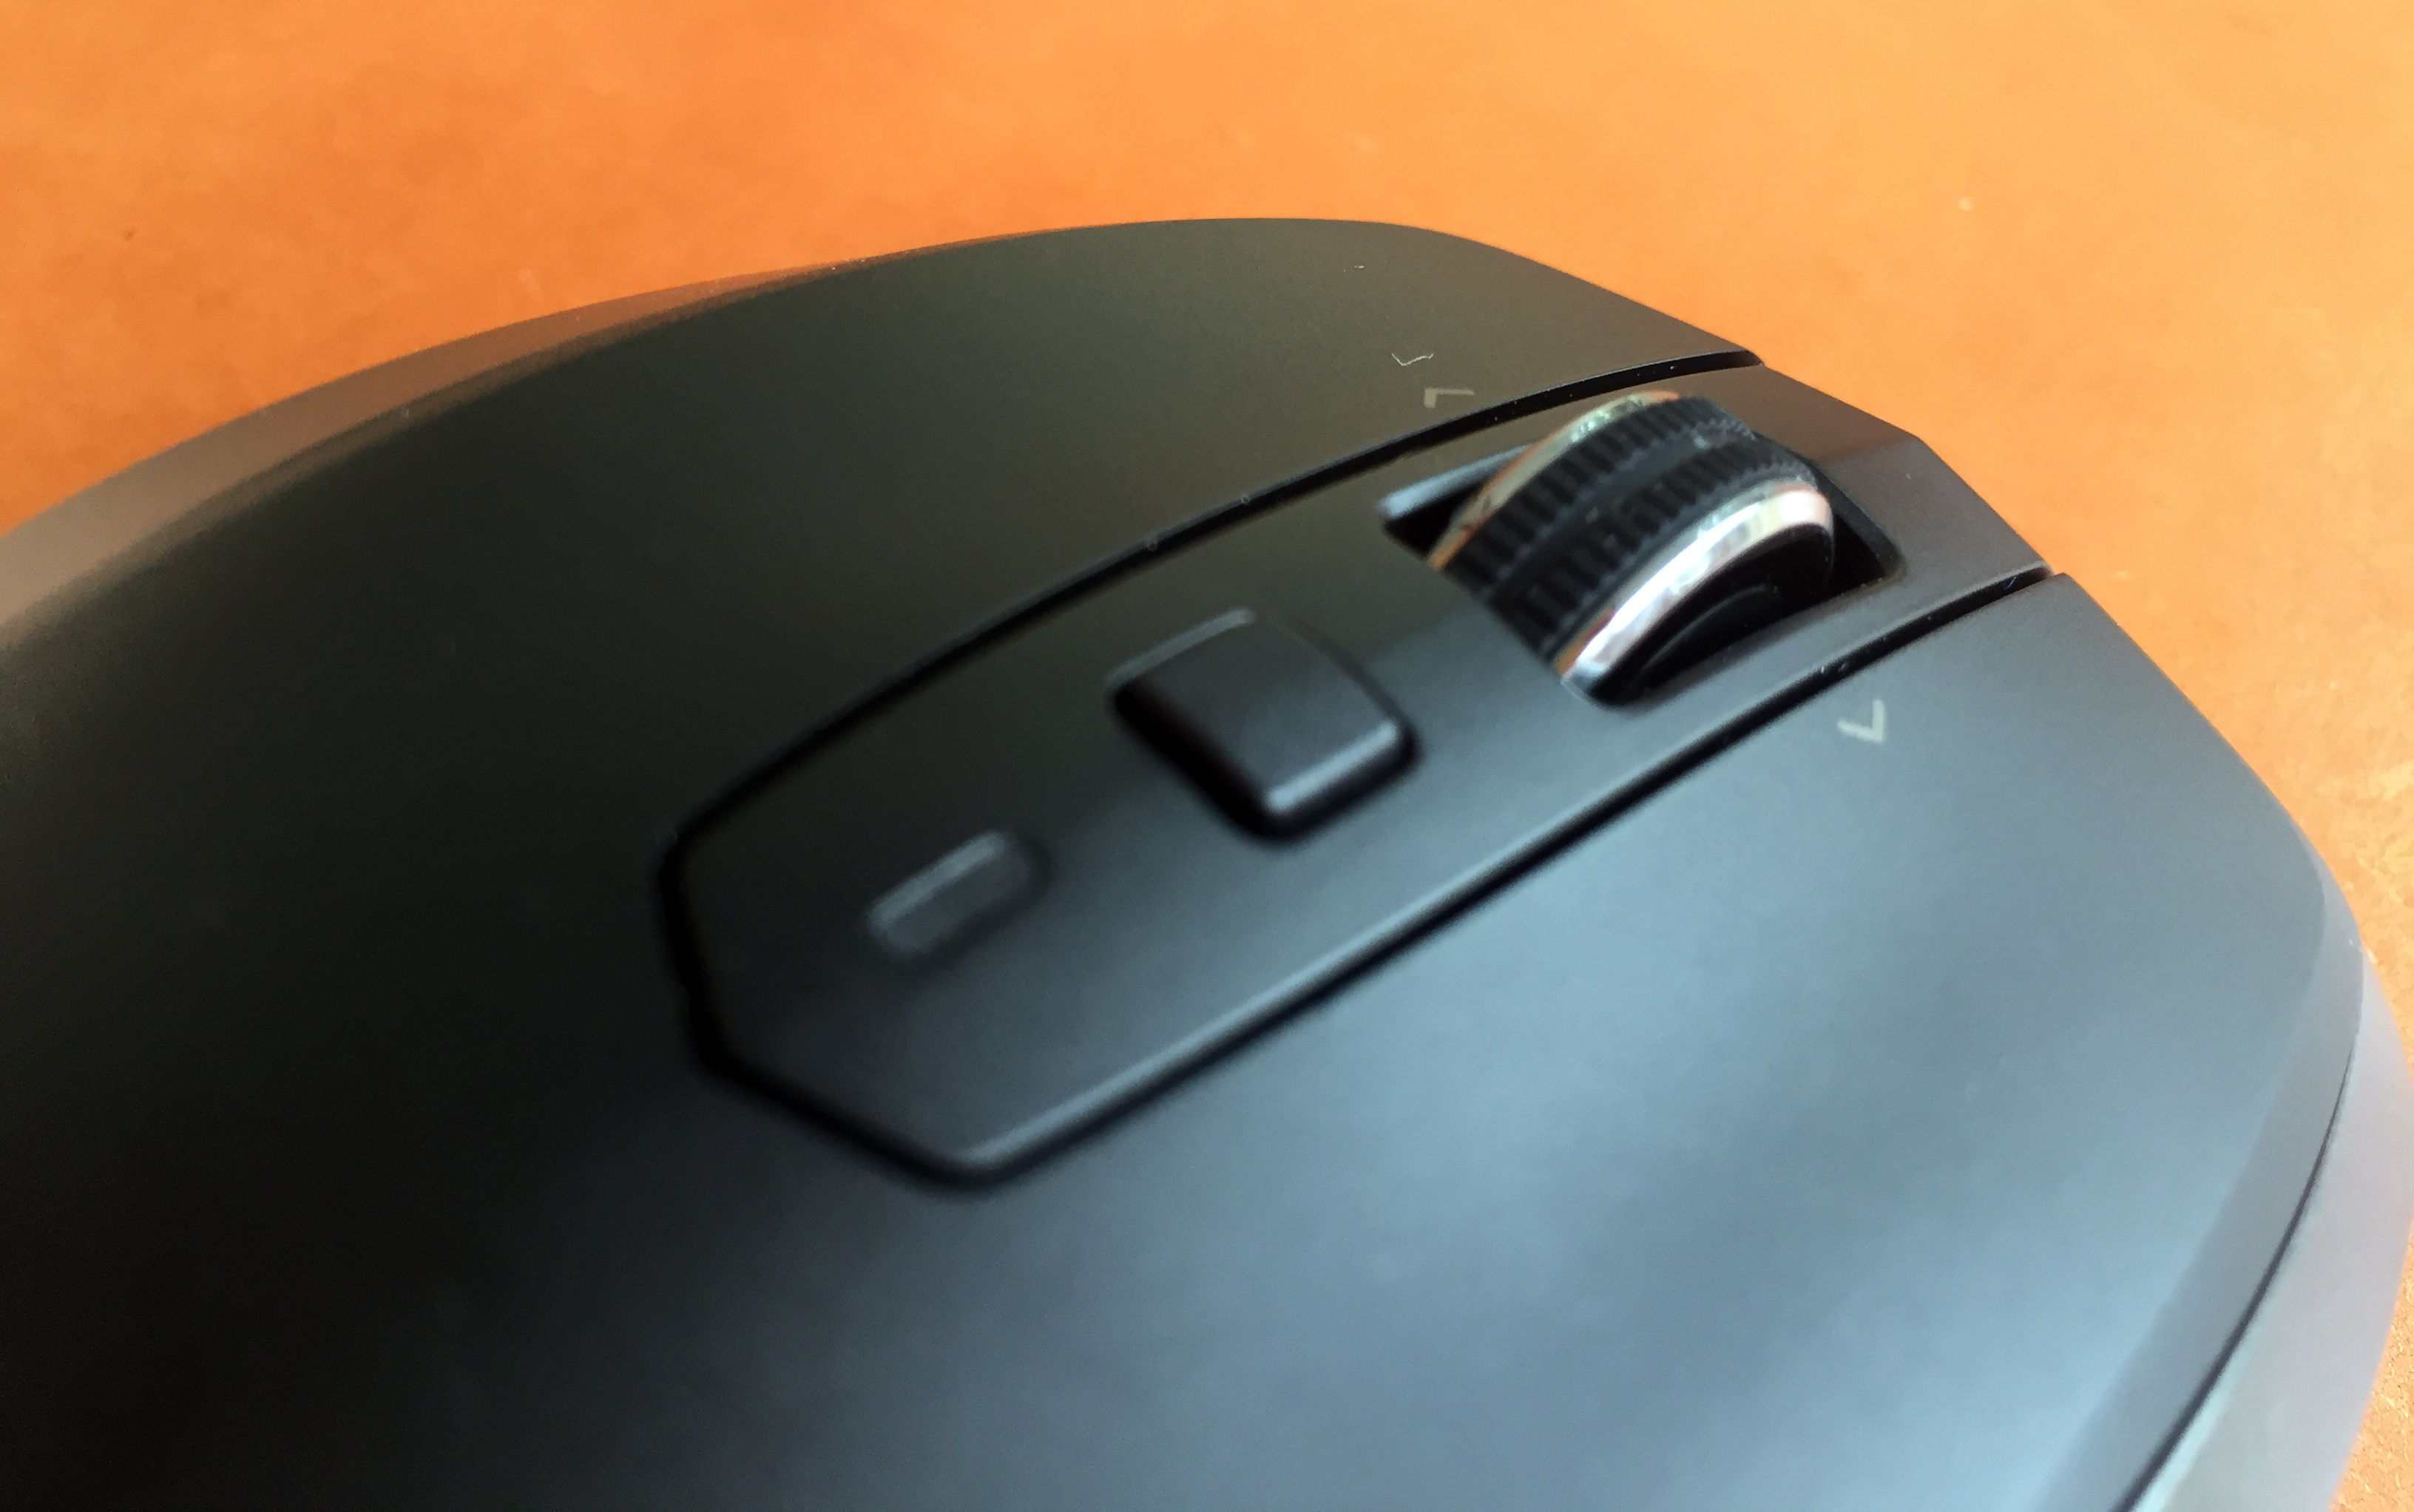 Review: Logitech's Anywhere 2 Bluetooth mouse shines w/ adaptive